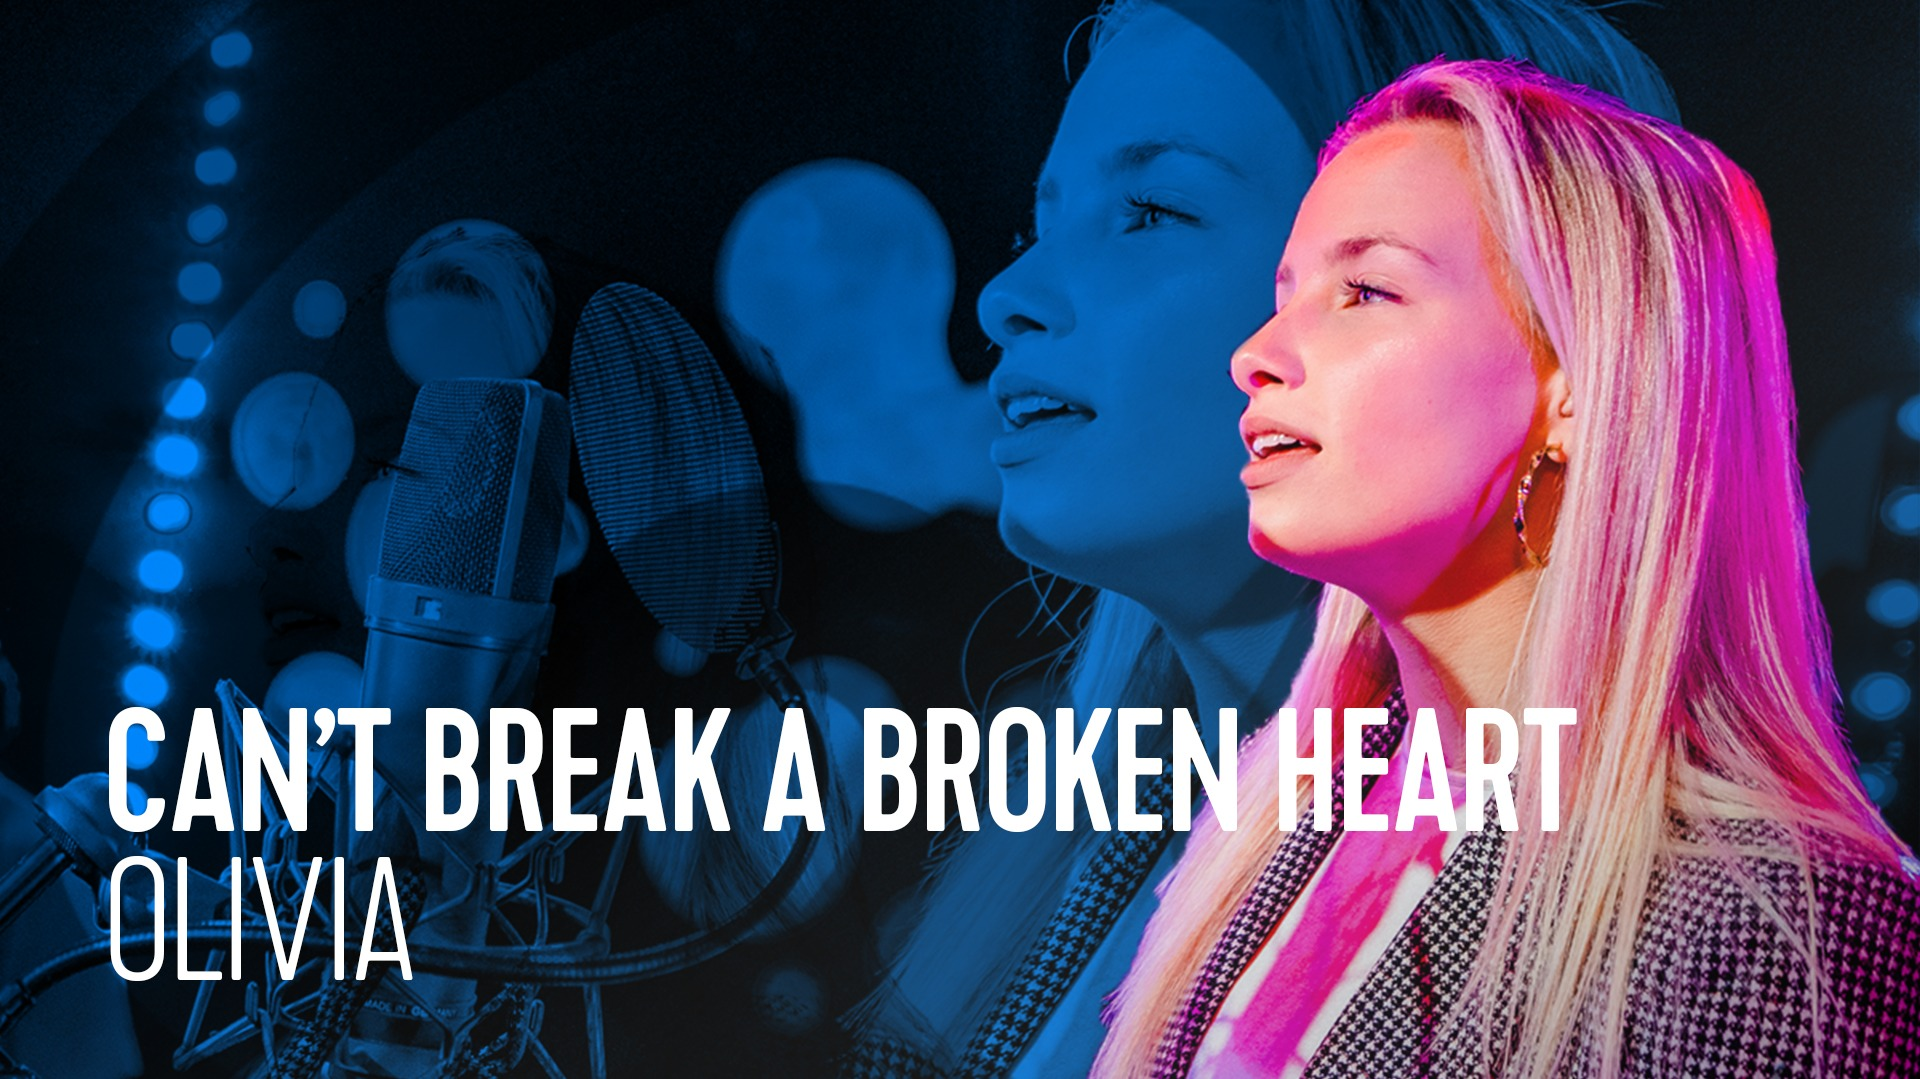 20210420   olivia   can t break a broken heart  16 9